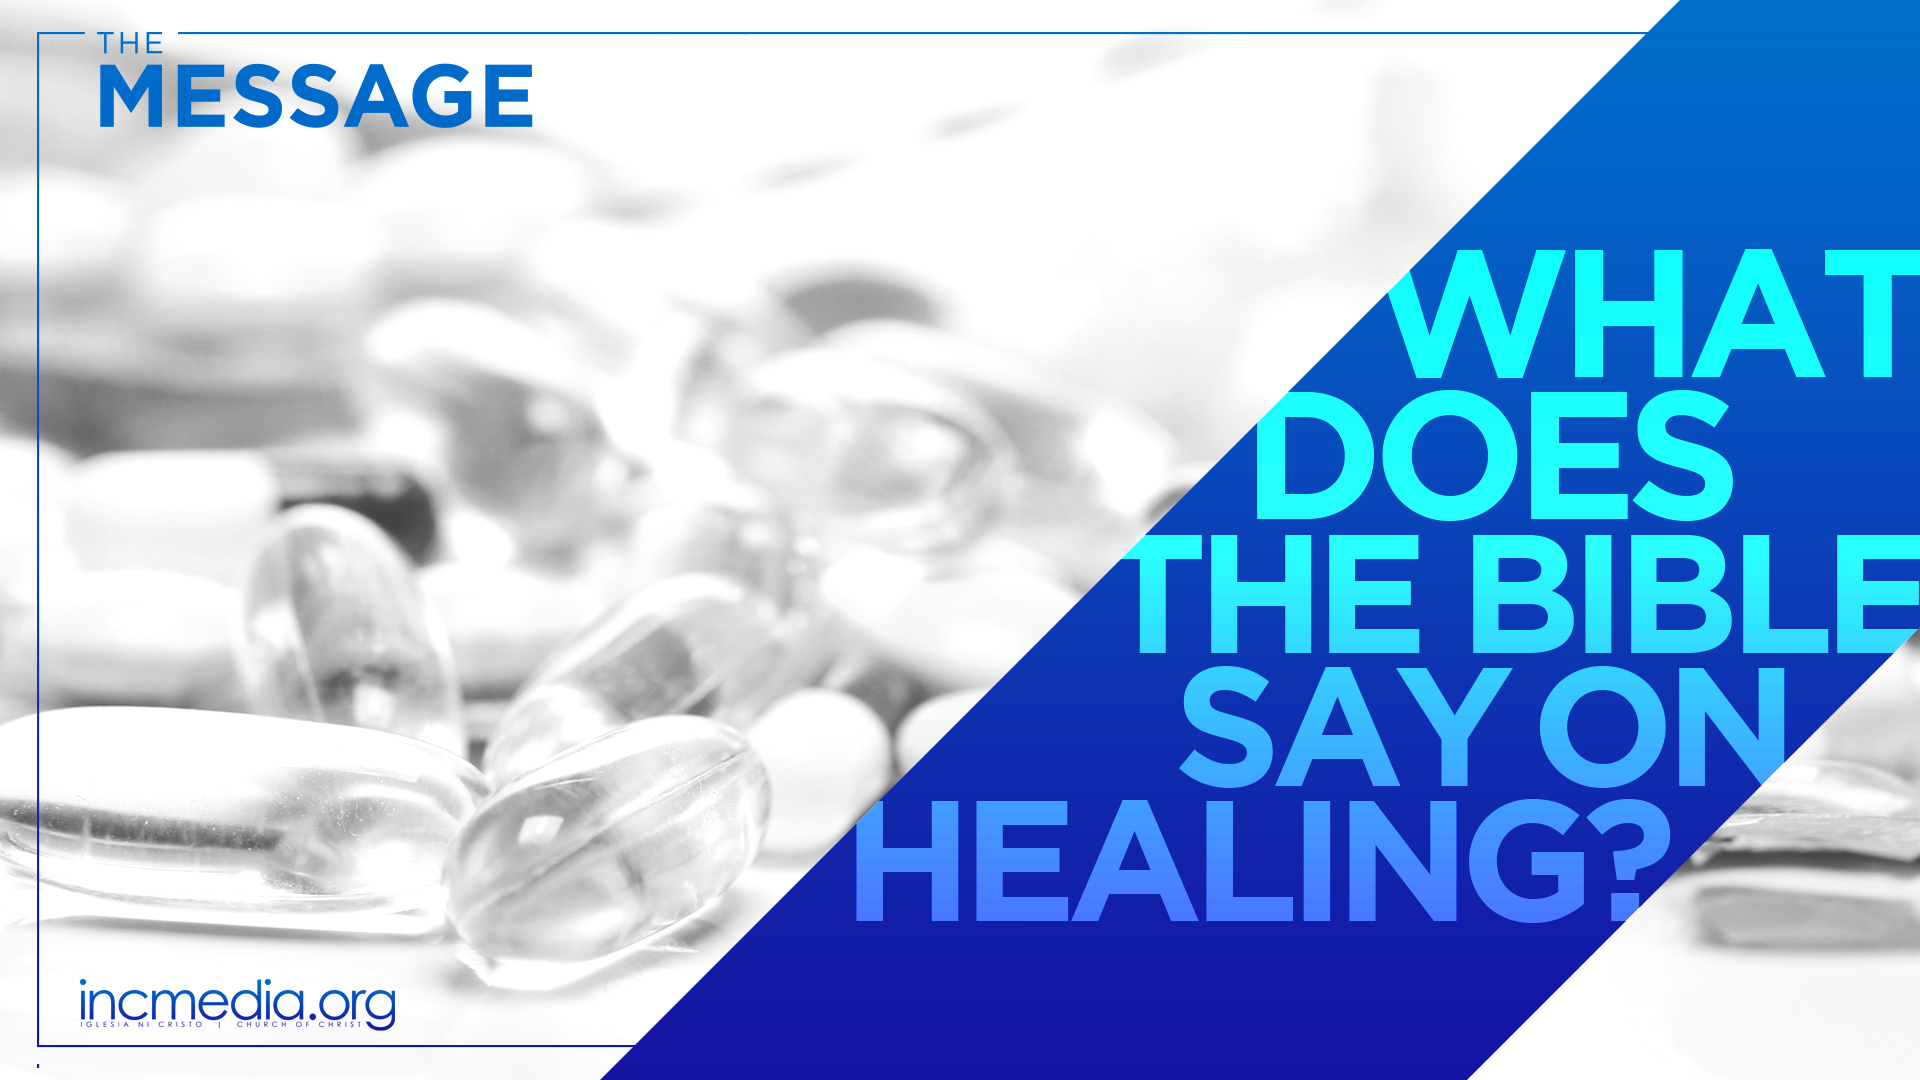 What Does the Bible Say on Healing?